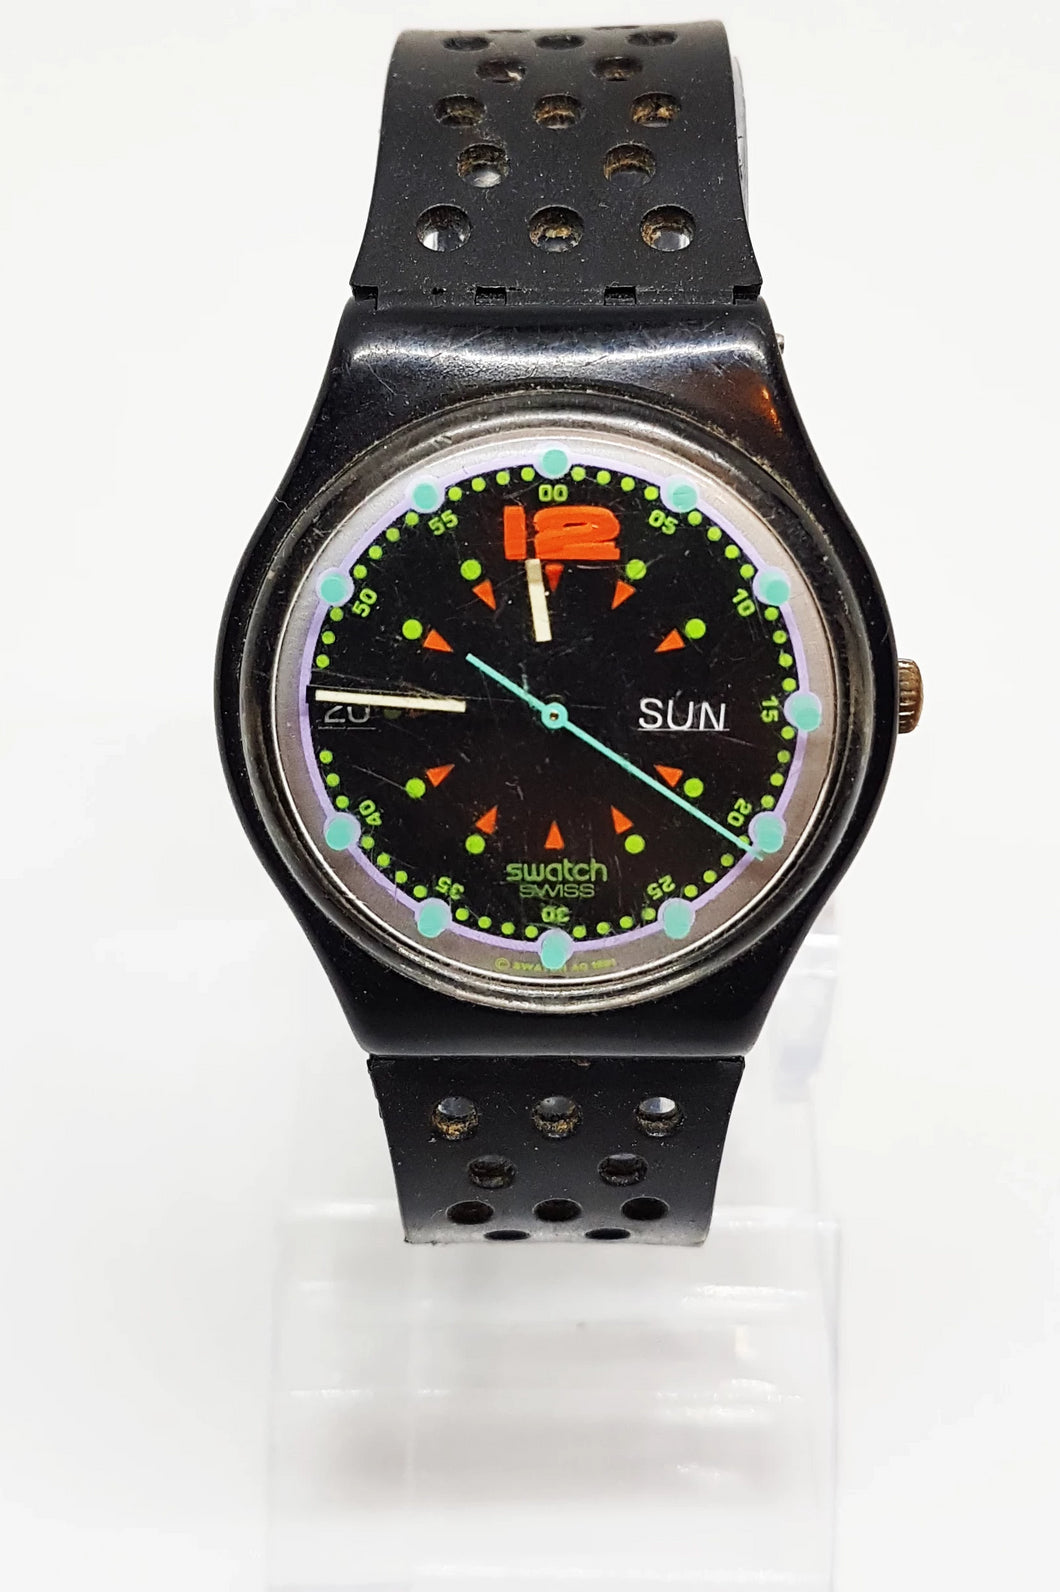 Black 1992 Vintage Swatch Watch Original BATTICUORE GB724 - Vintage Radar